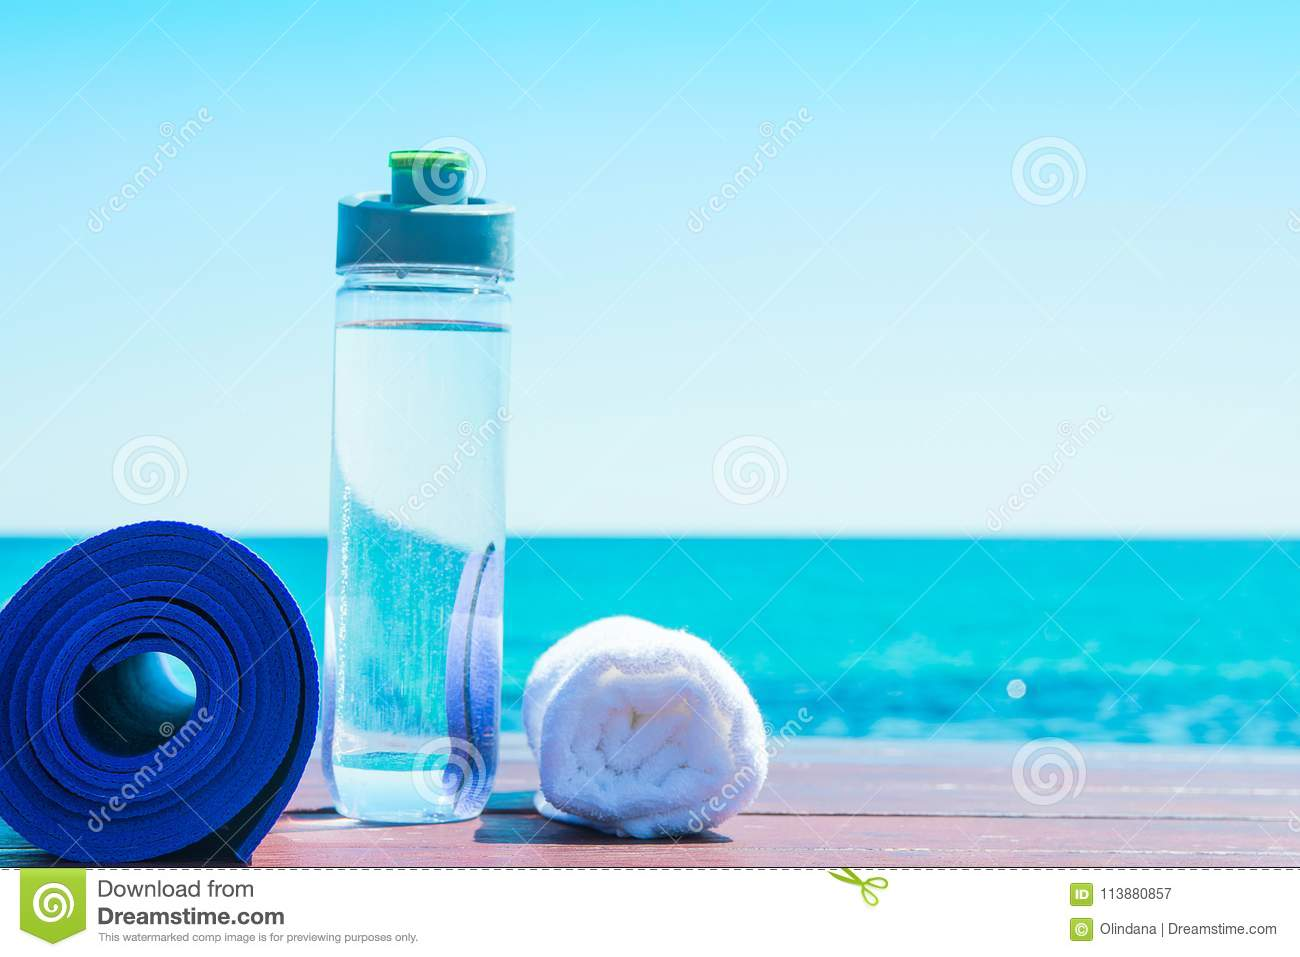 Rolled Yoga Mat Bottle with Water White Towel on Beach with Turquoise Sea Blue Sky in Background. Sunlight. Relaxation Meditation